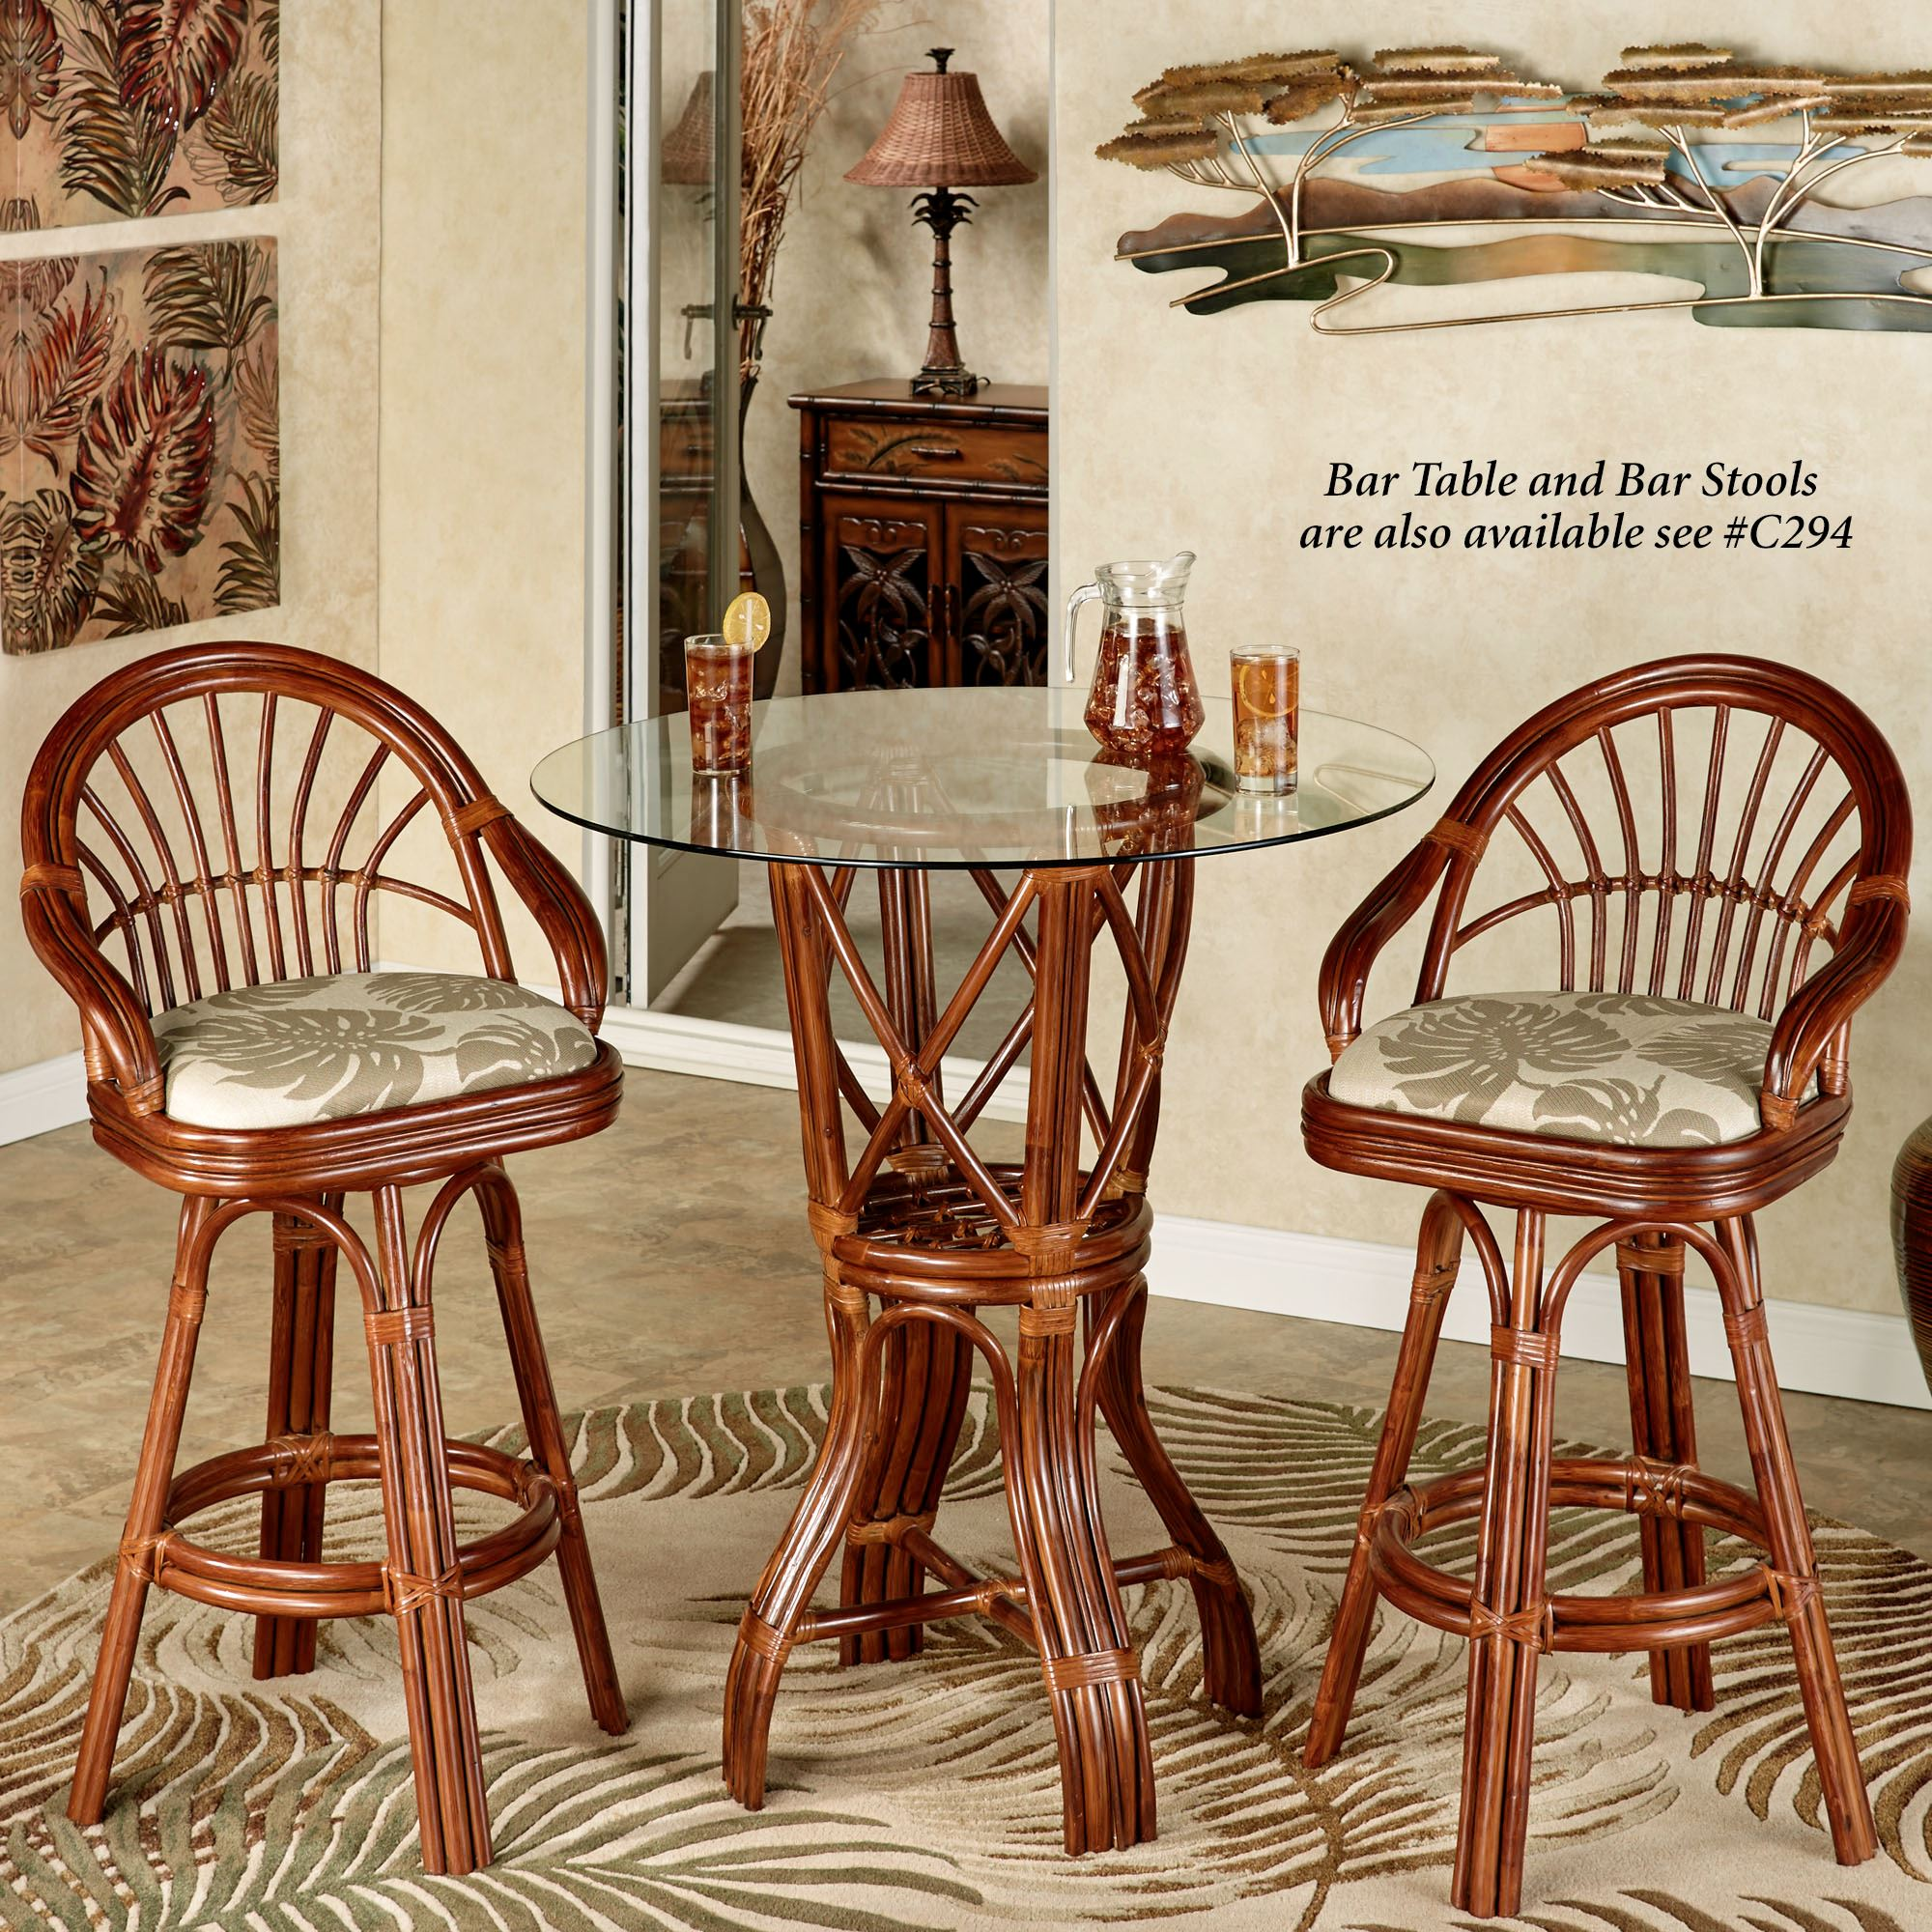 Kitchen Table With Rolling Chairs: Leikela Rattan Tropical Dining Furniture Set